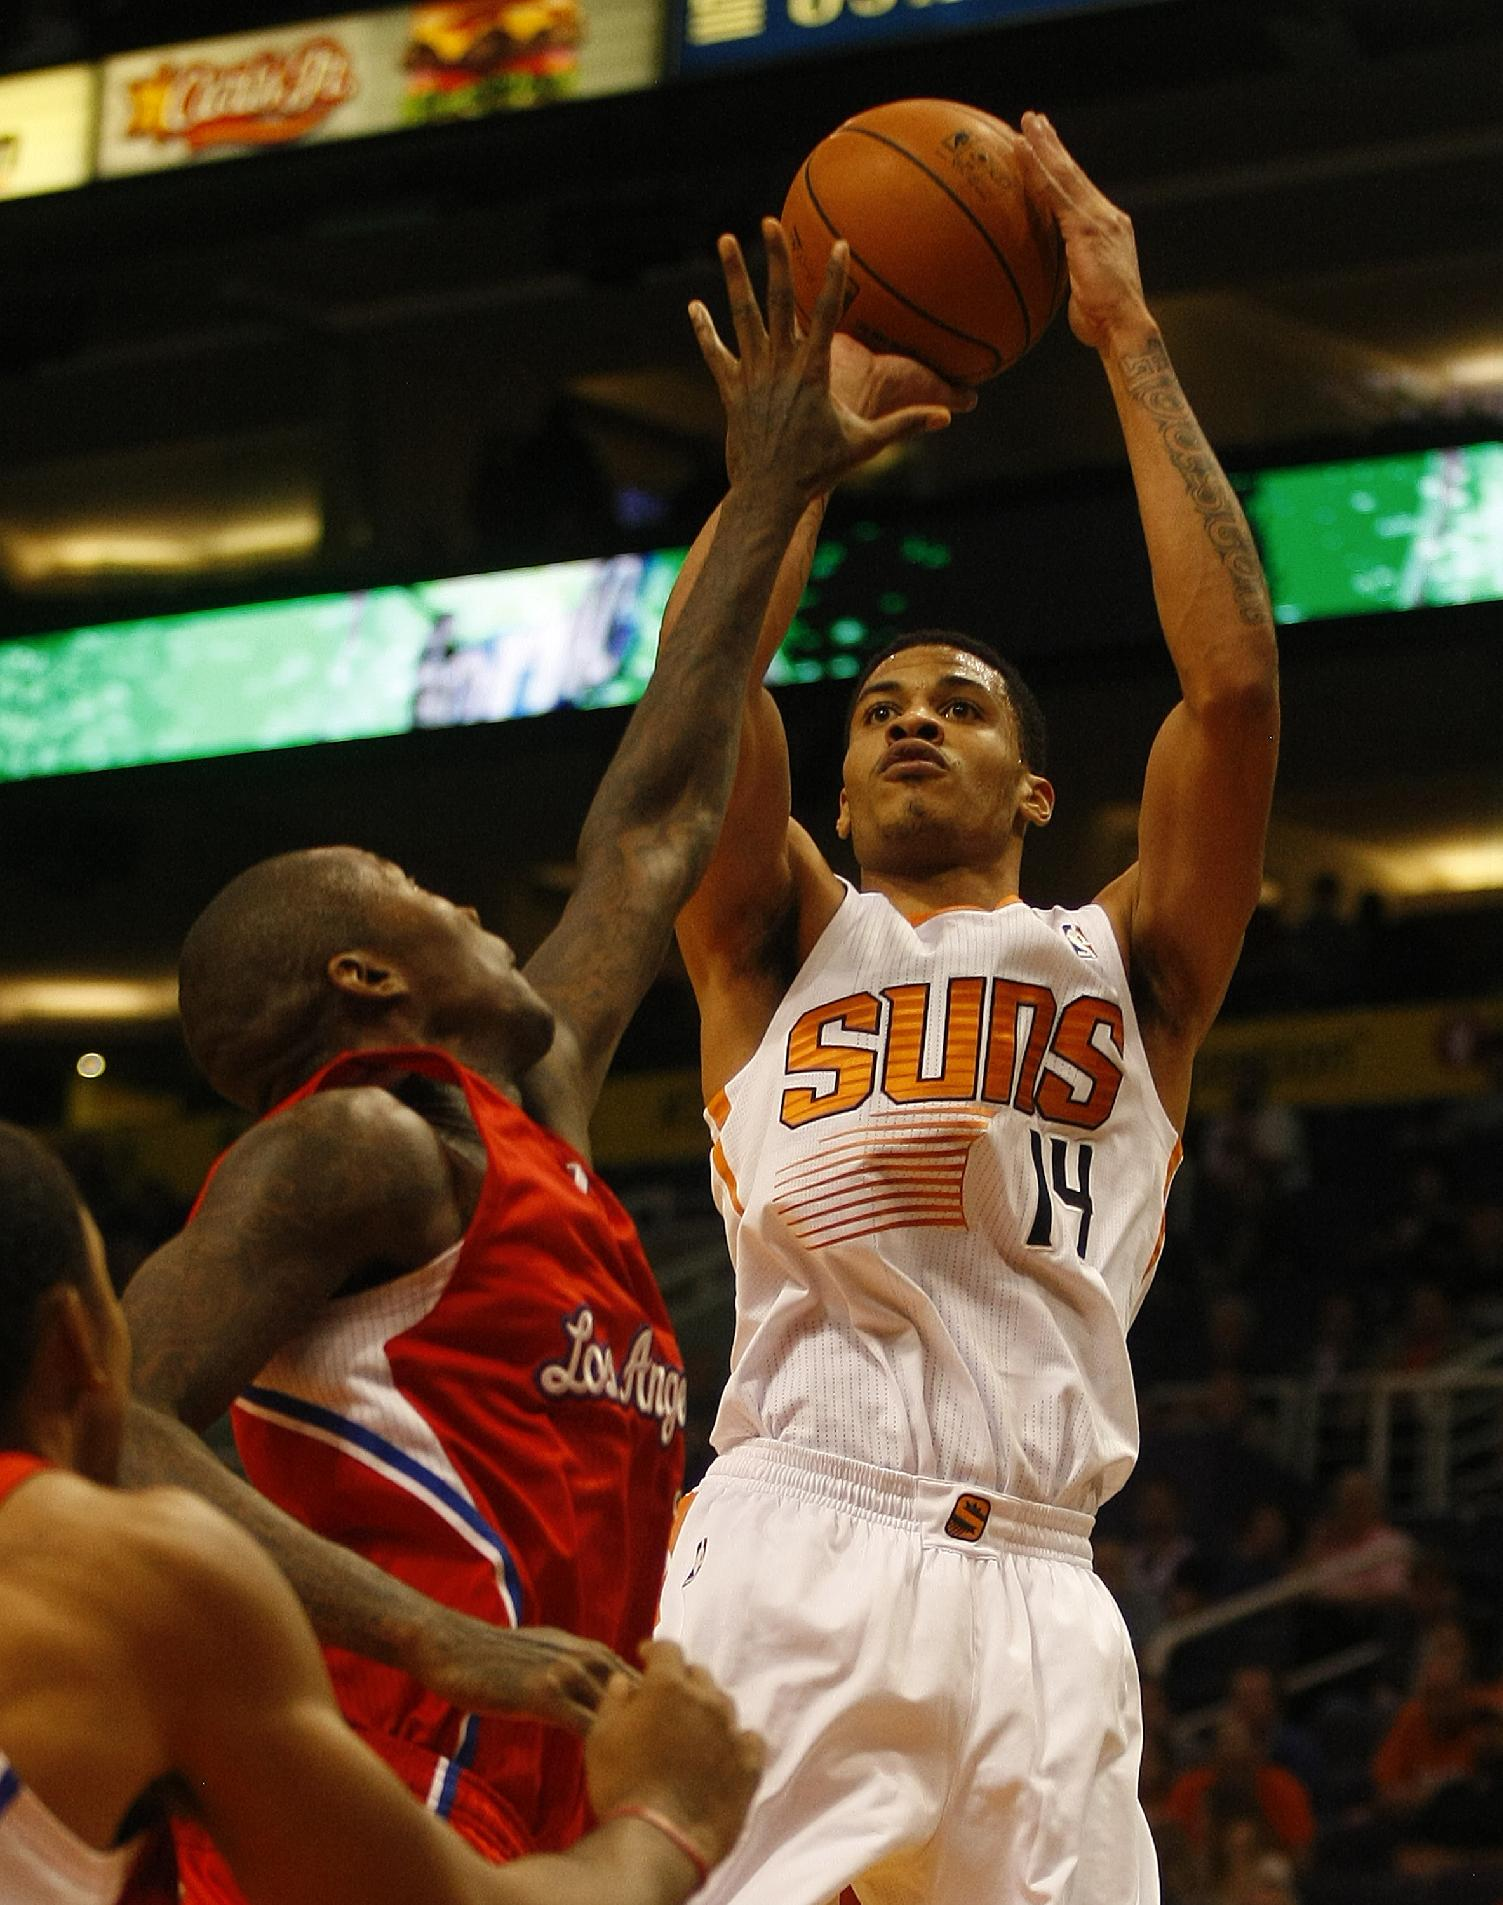 Phoenix Suns shooting guard Gerald Green (14) shoots against the Los Angeles Clippers in the third quarter during an NBA preseason basketball game on Tuesday, Oct. 15, 2013, in Phoenix